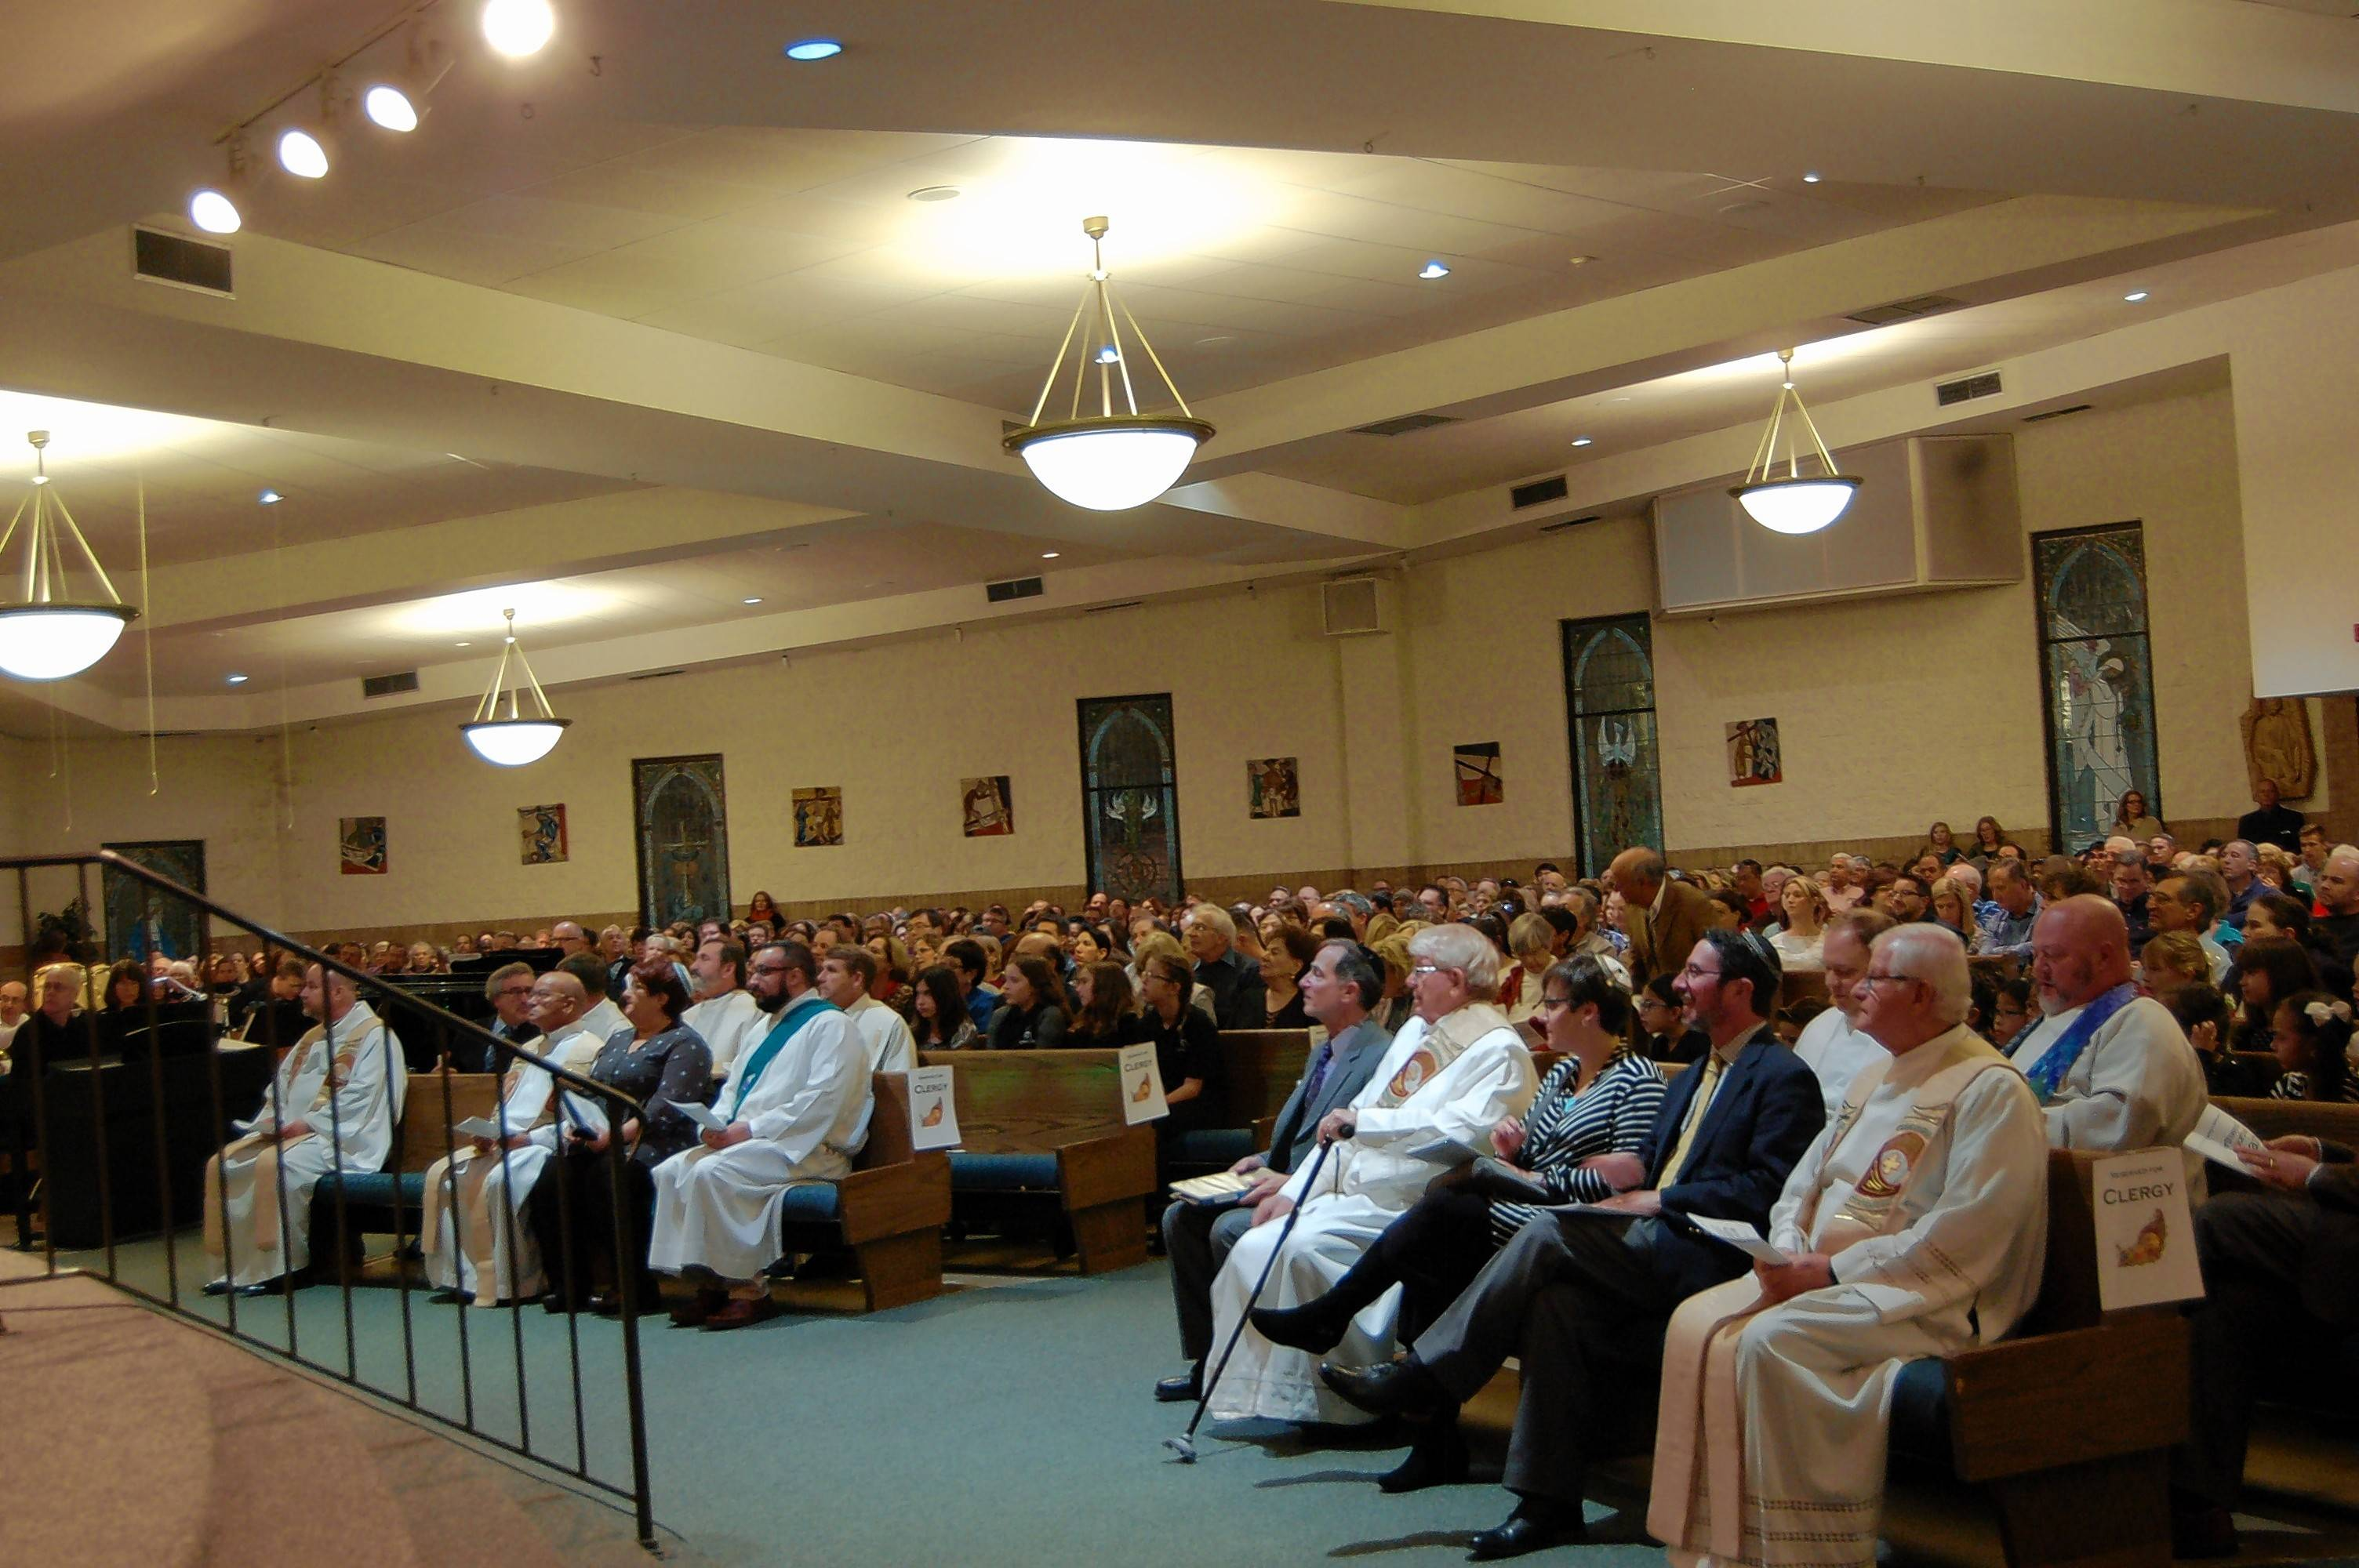 Sunday night's interfaith Thanksgiving service drew a standing-room-only crowd to St. Mary Catholic Church in Buffalo Grove.